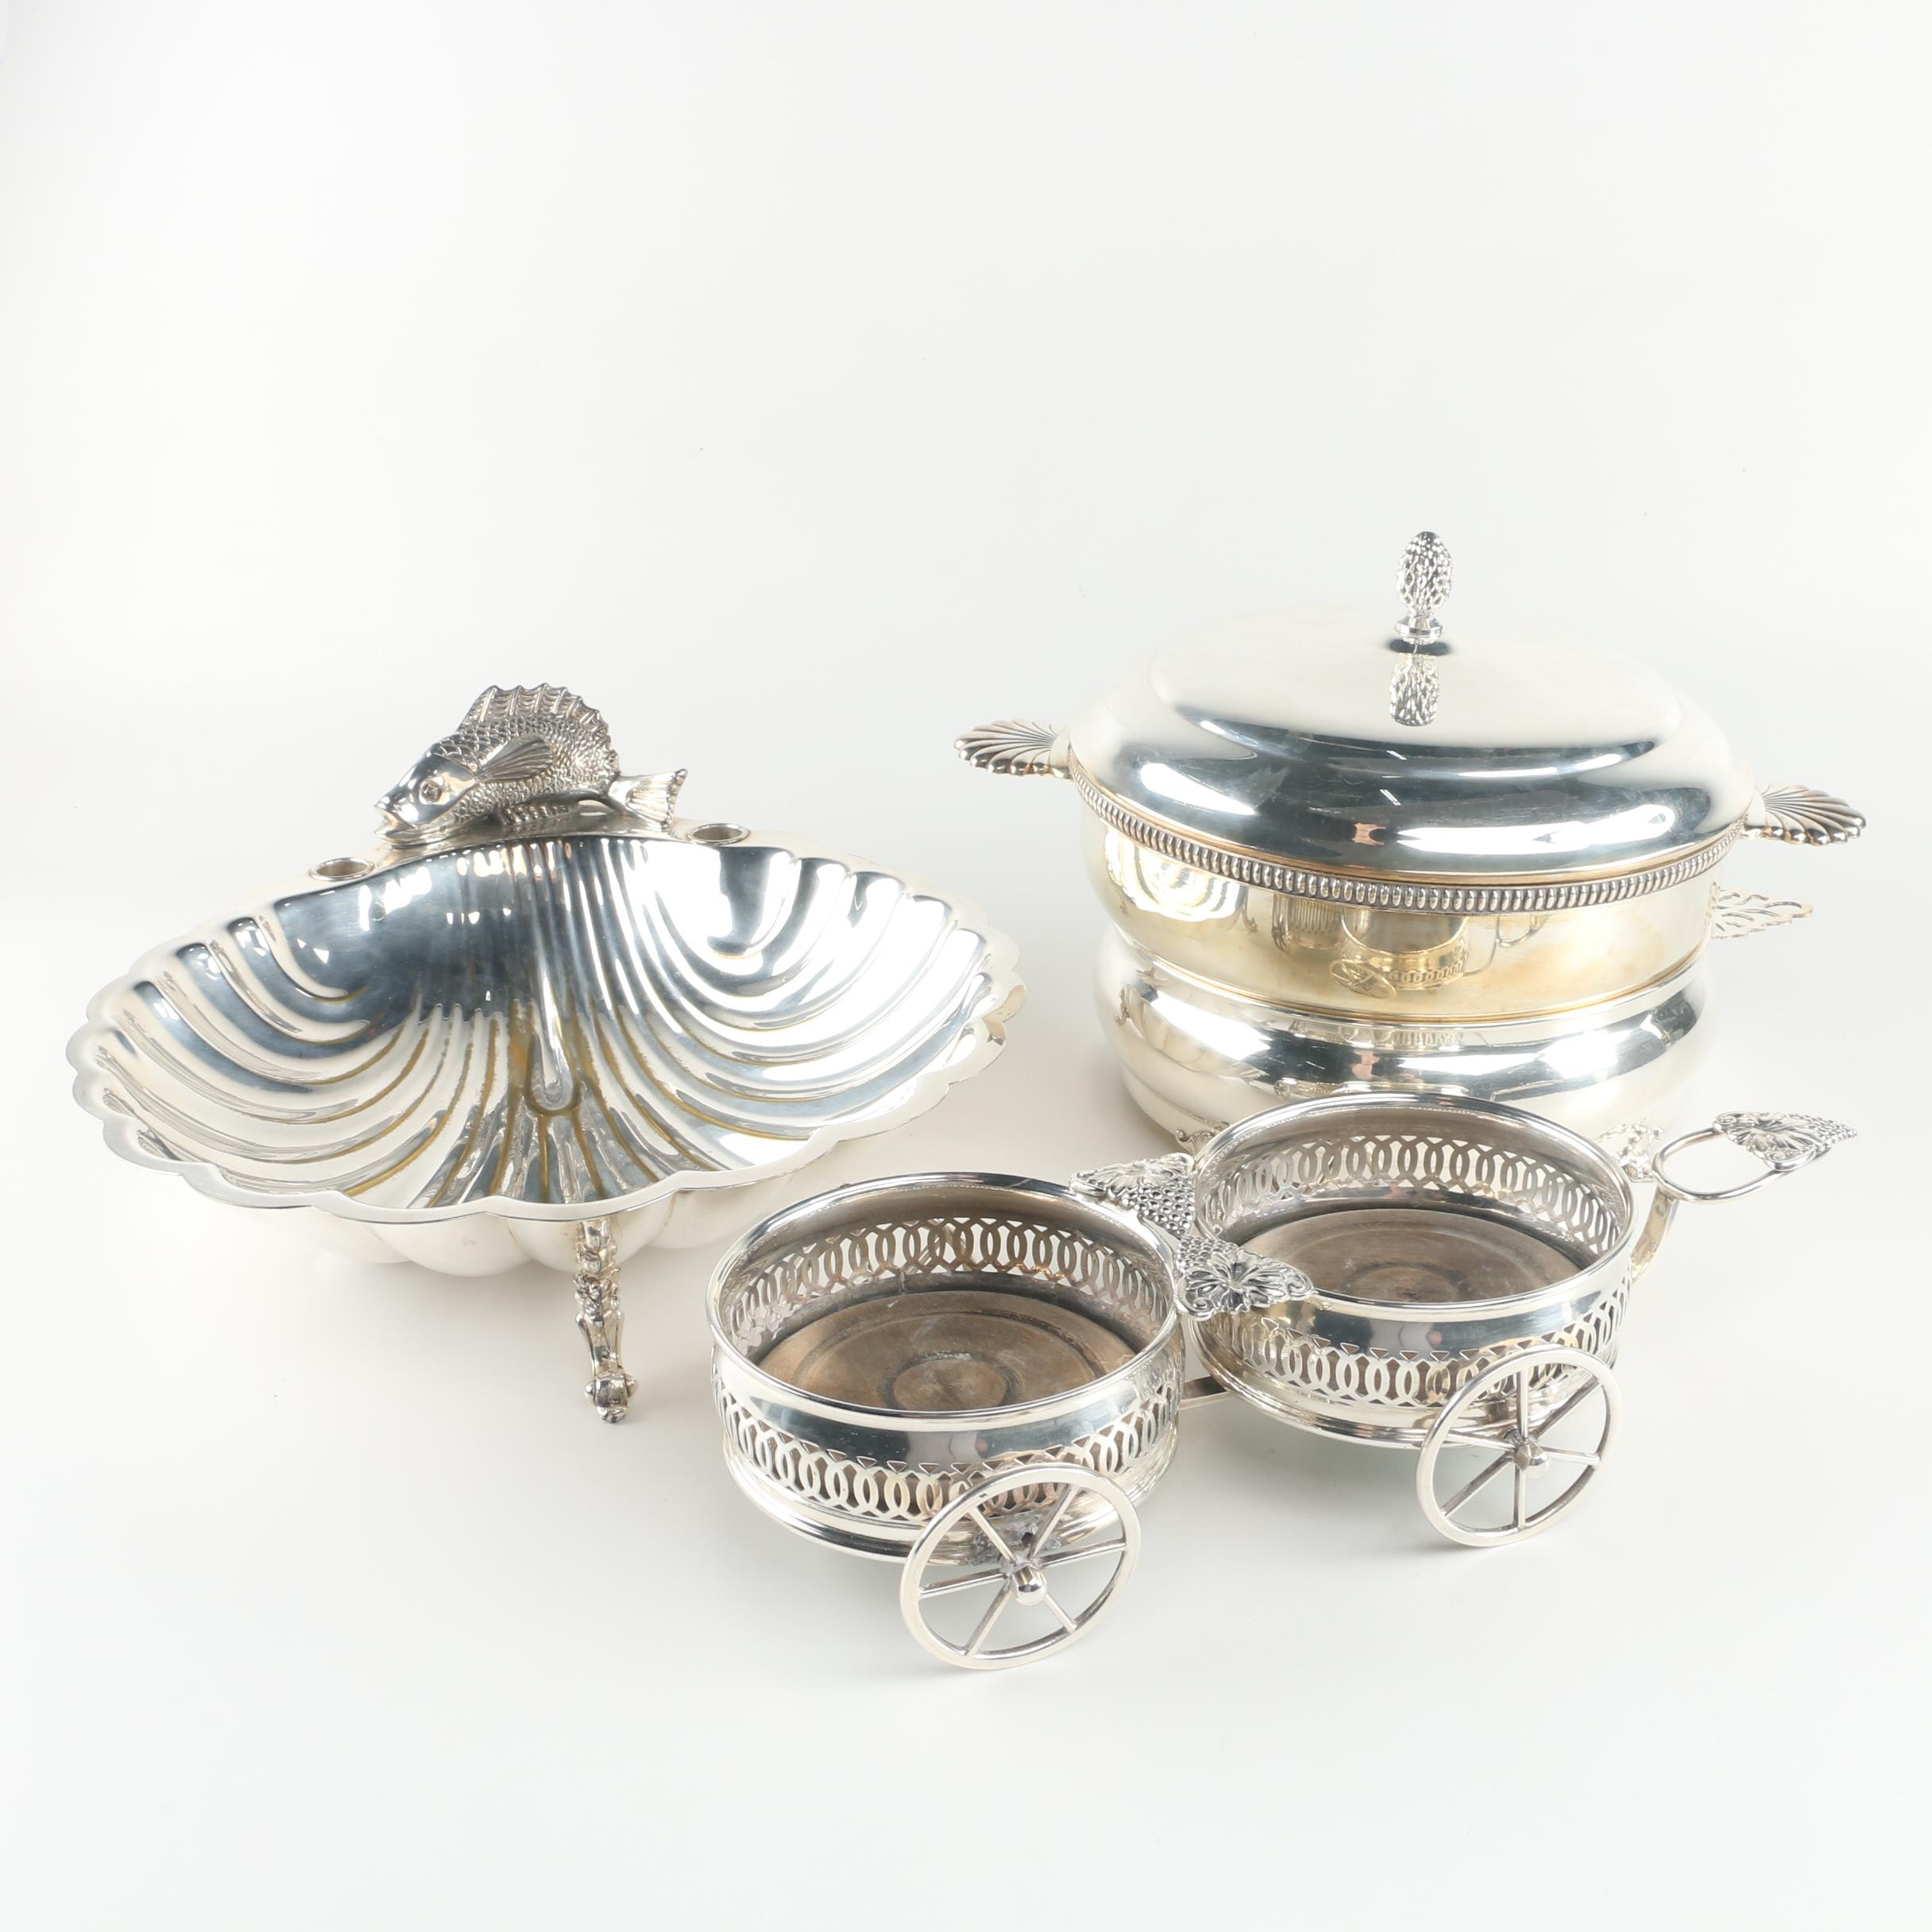 Sheridan Silver Co. Scallop Shell Dish with Other Silver Plate Serveware